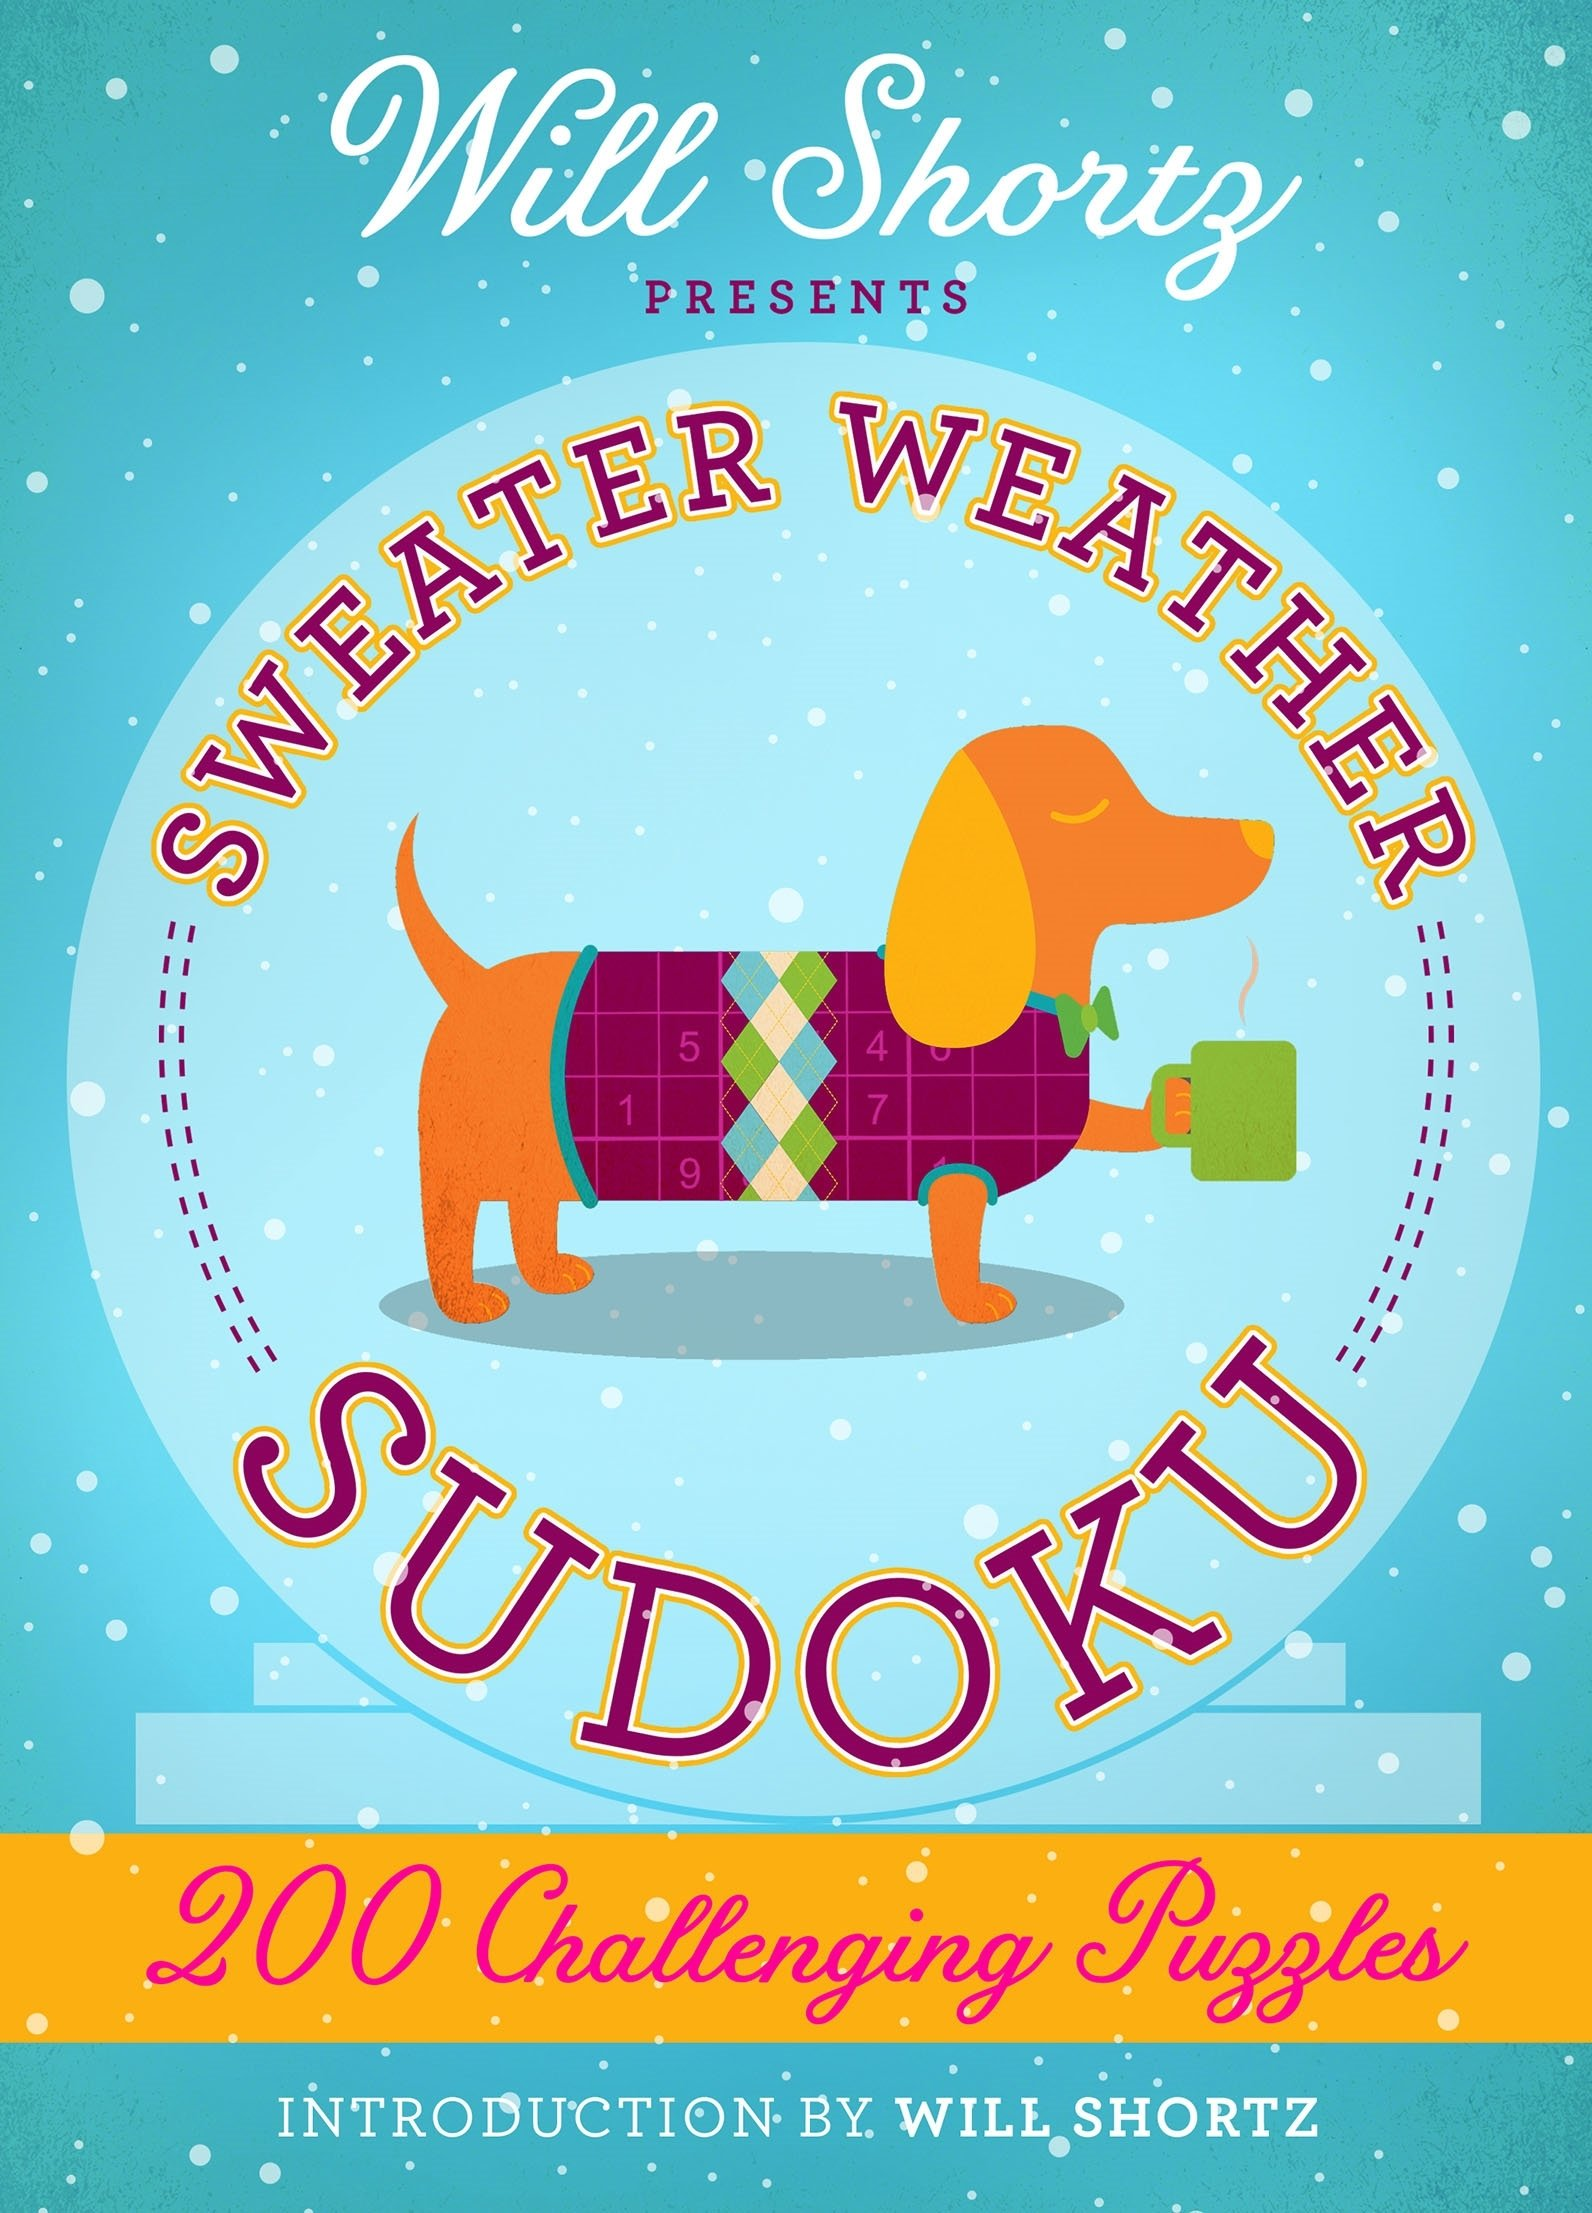 Download Will Shortz Presents Sweater Weather Sudoku: 200 Challenging Puzzles: Hard Sudoku Volume 2 PDF